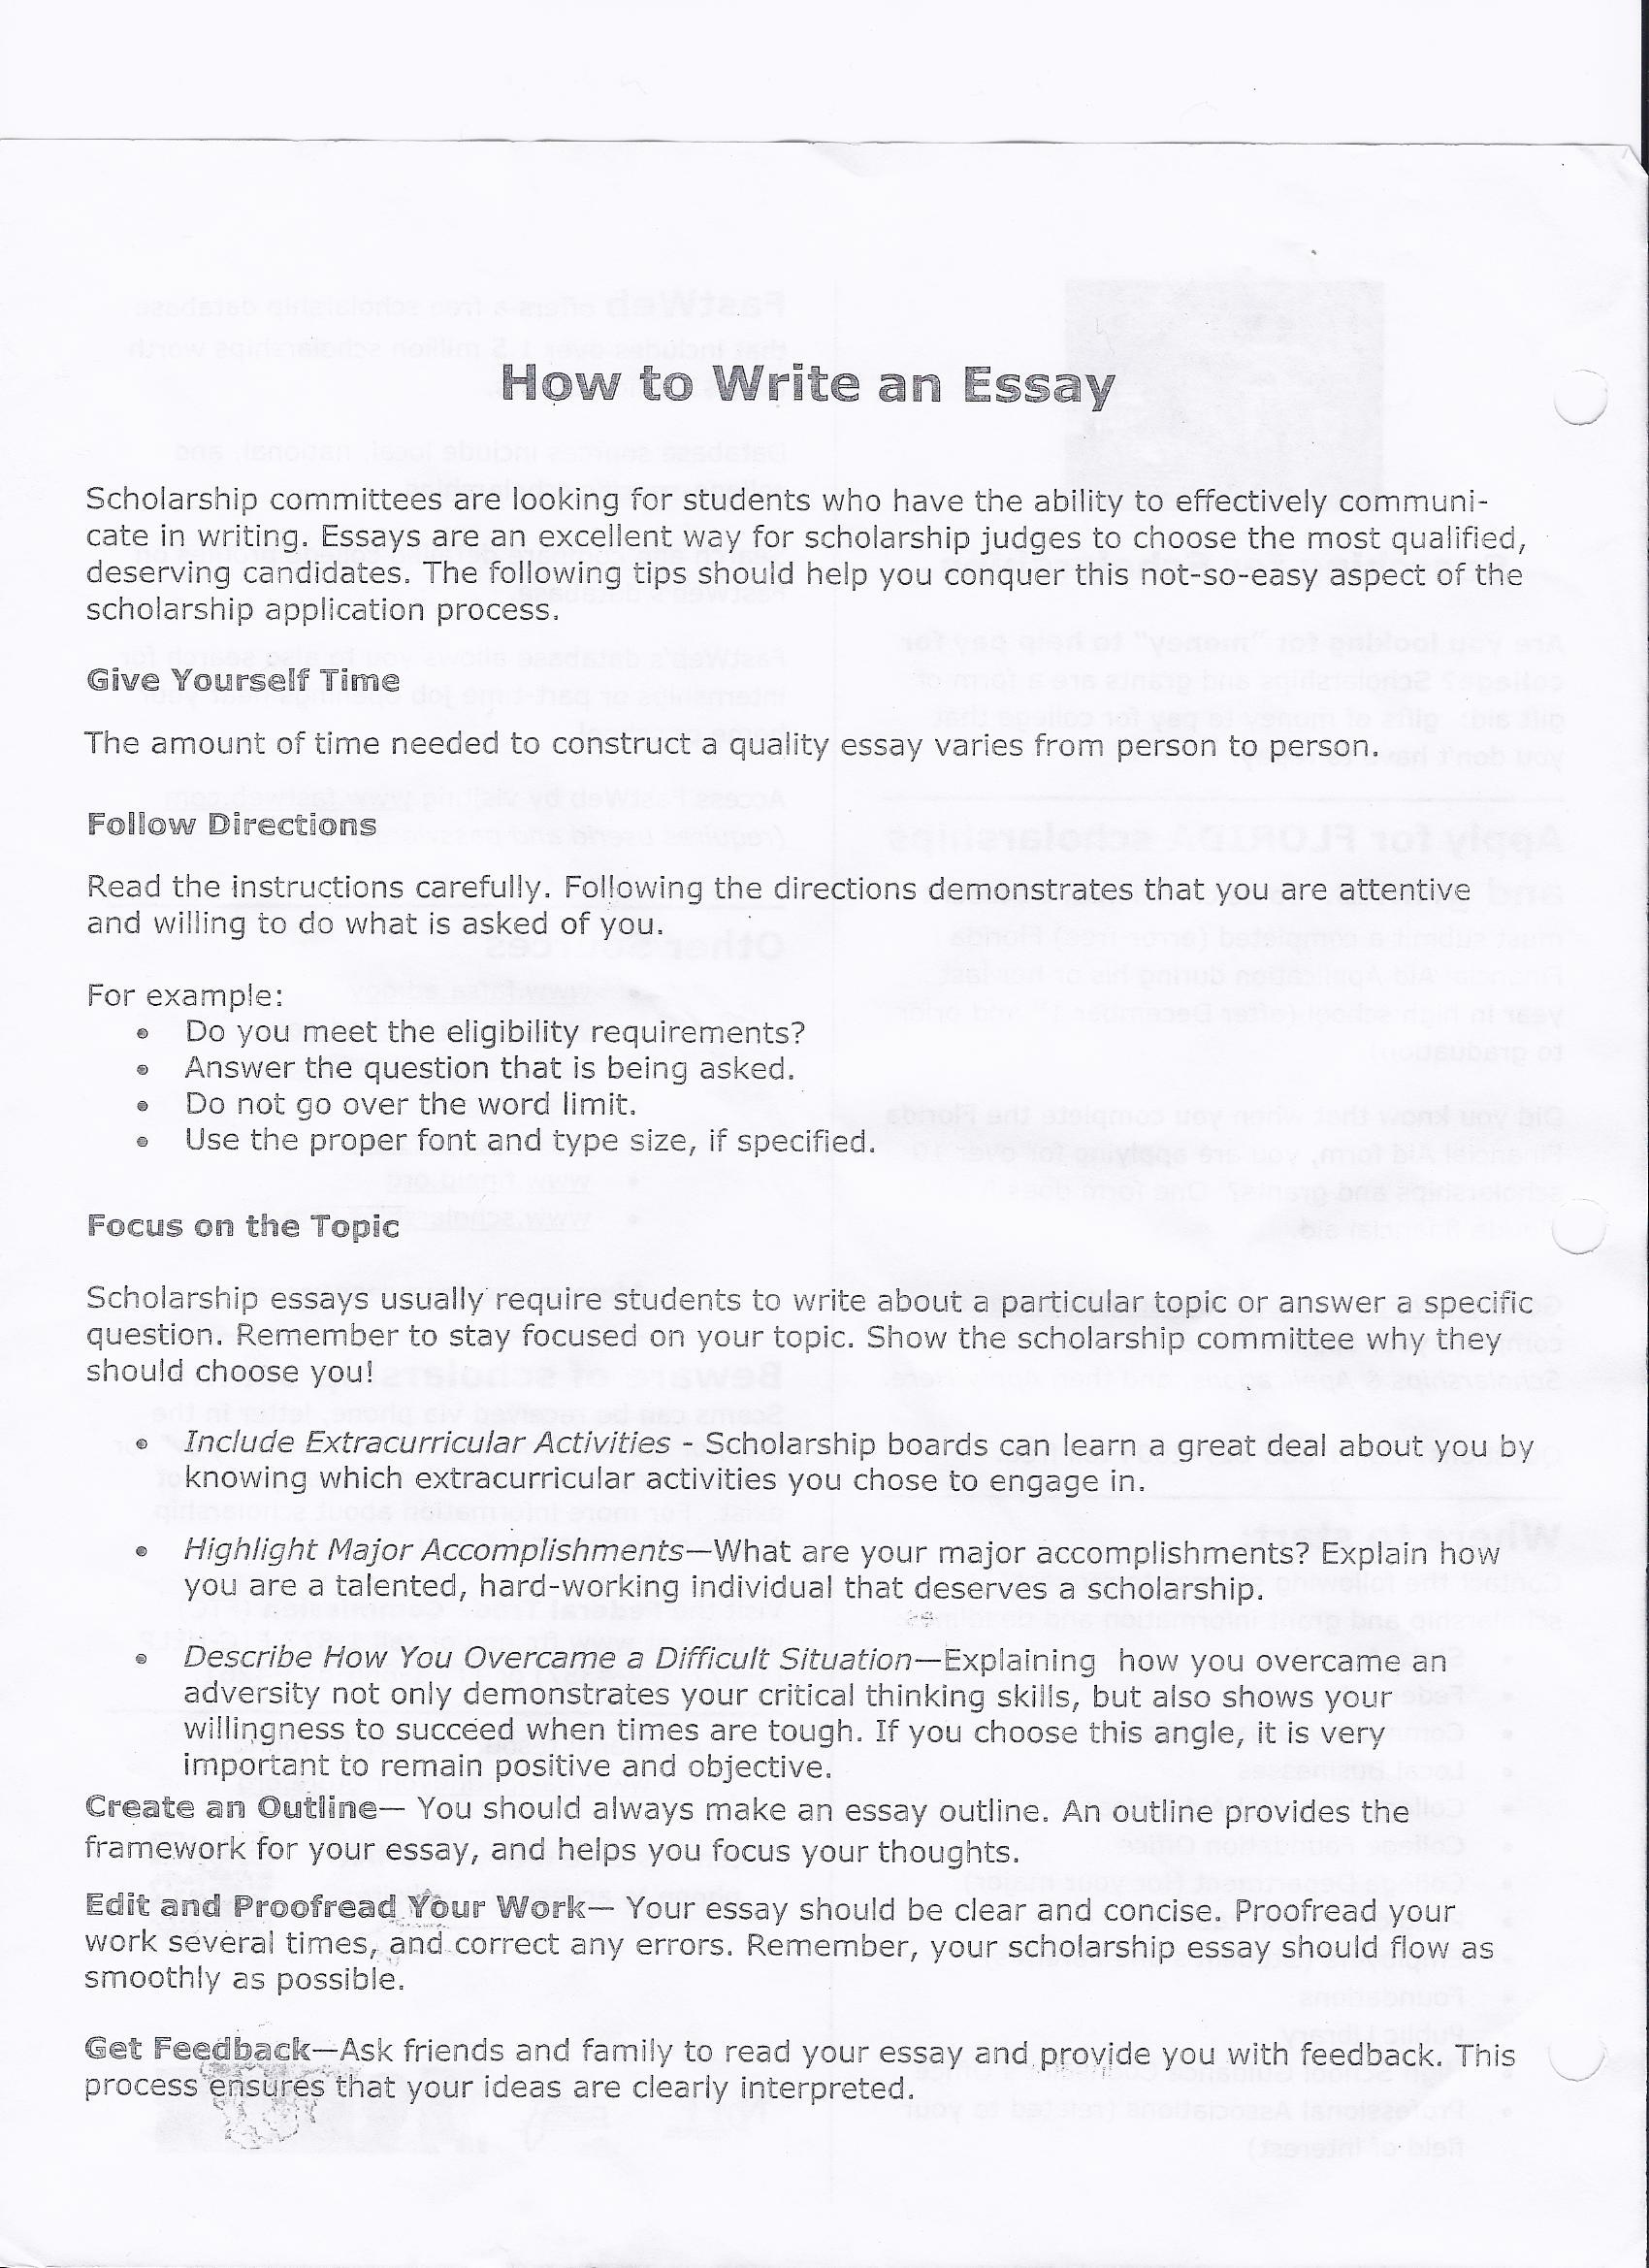 activity college essay 2 writing the college admission essay/uc personal statements as a transfer student, the essay is an important part of your admission application for the university of.